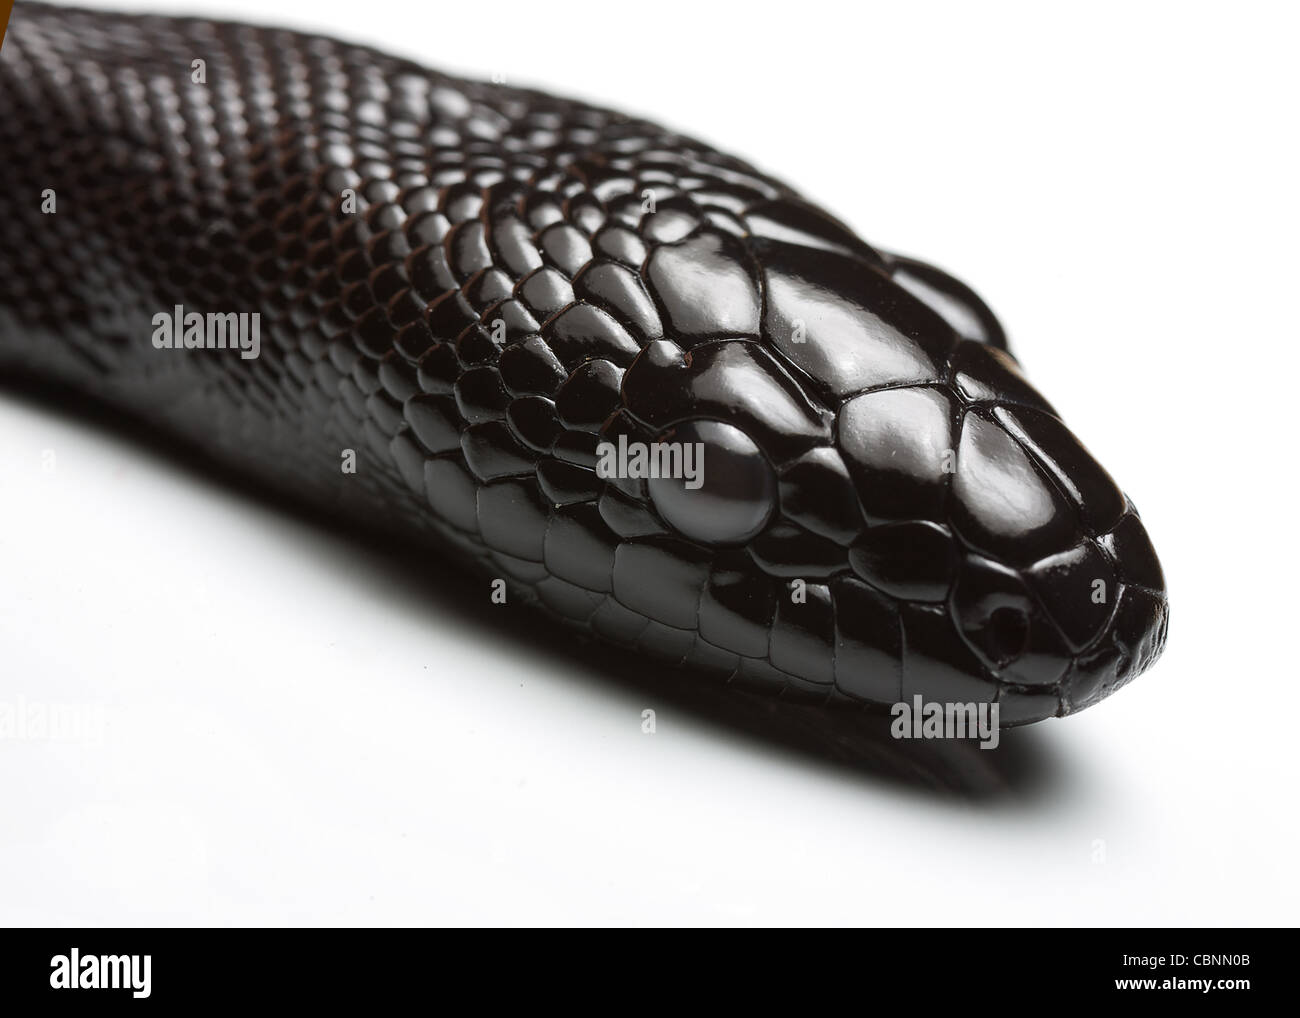 juvenile black headed python - Stock Image